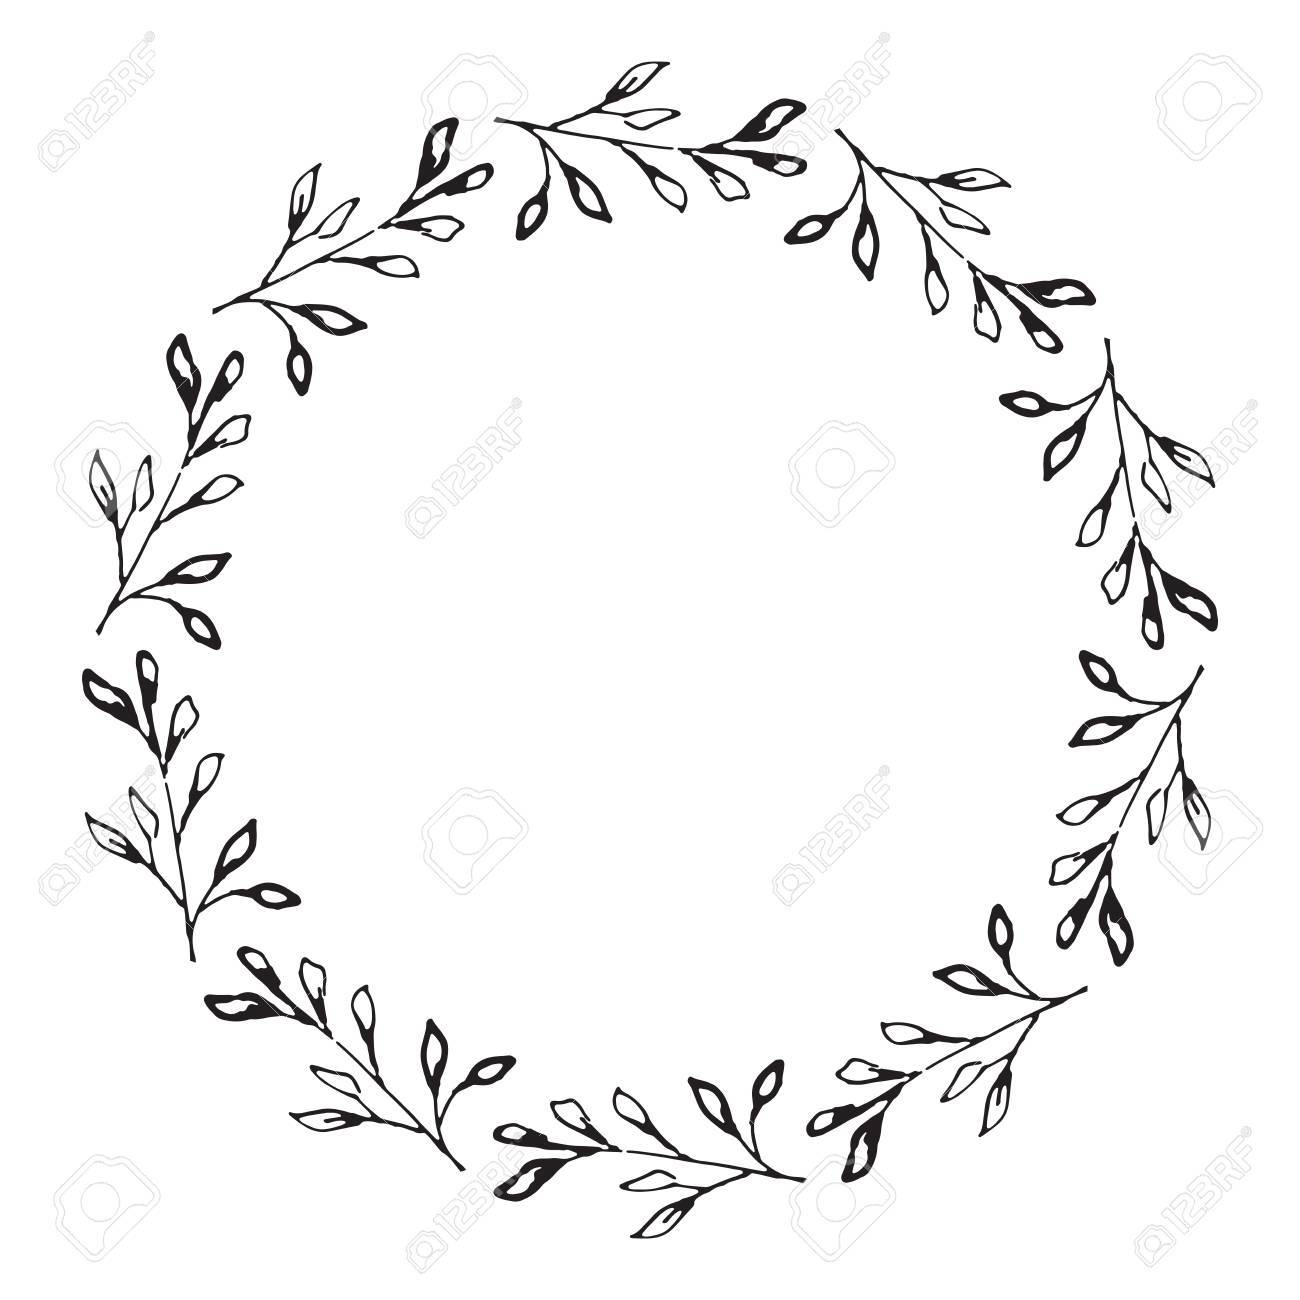 Wreath clipart free download image Wreath Drawing | Free download best Wreath Drawing on ... image